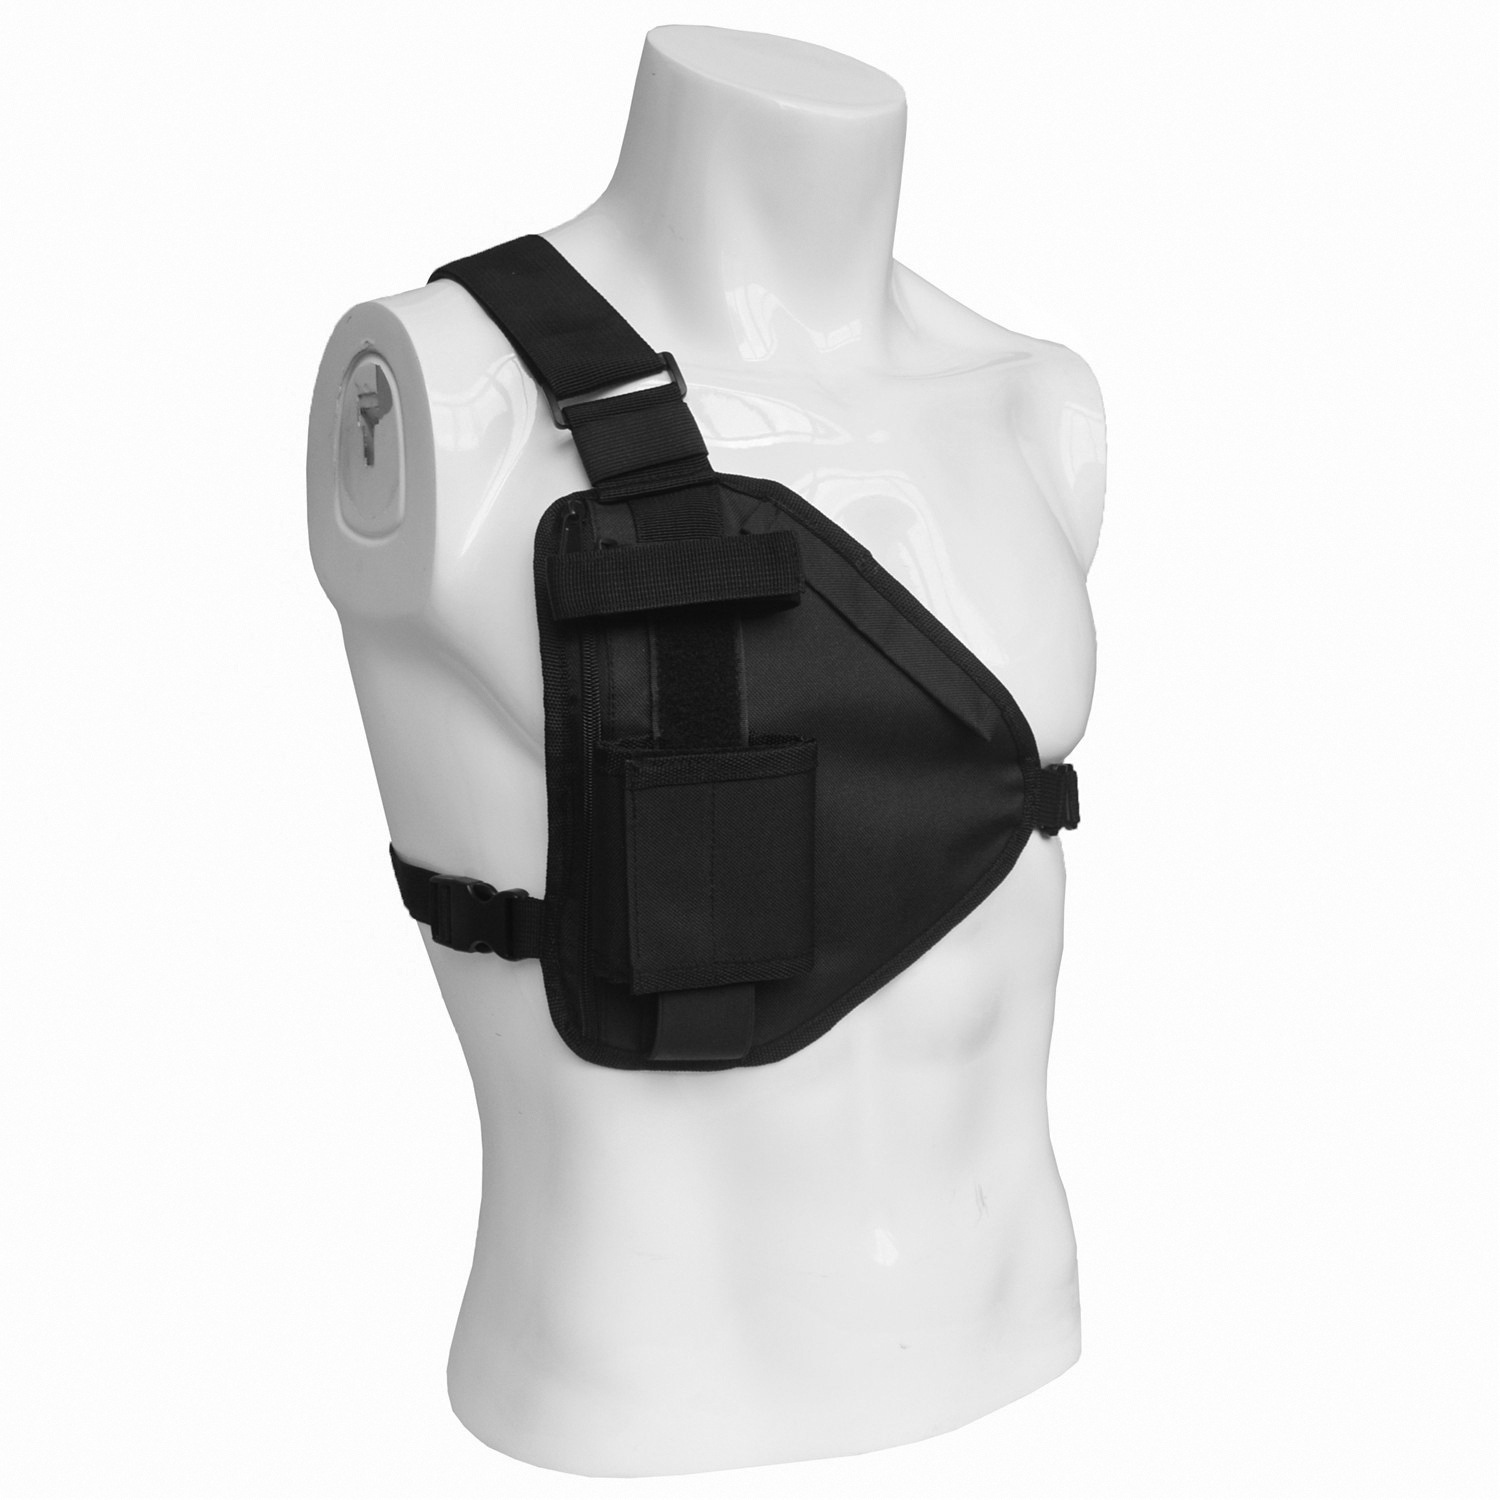 The New Chest Rig Streetwear Functional Harness Chest Bag Cross Shoulder Bag Adjustable Tactical Anti-theft Bags Waist Packs